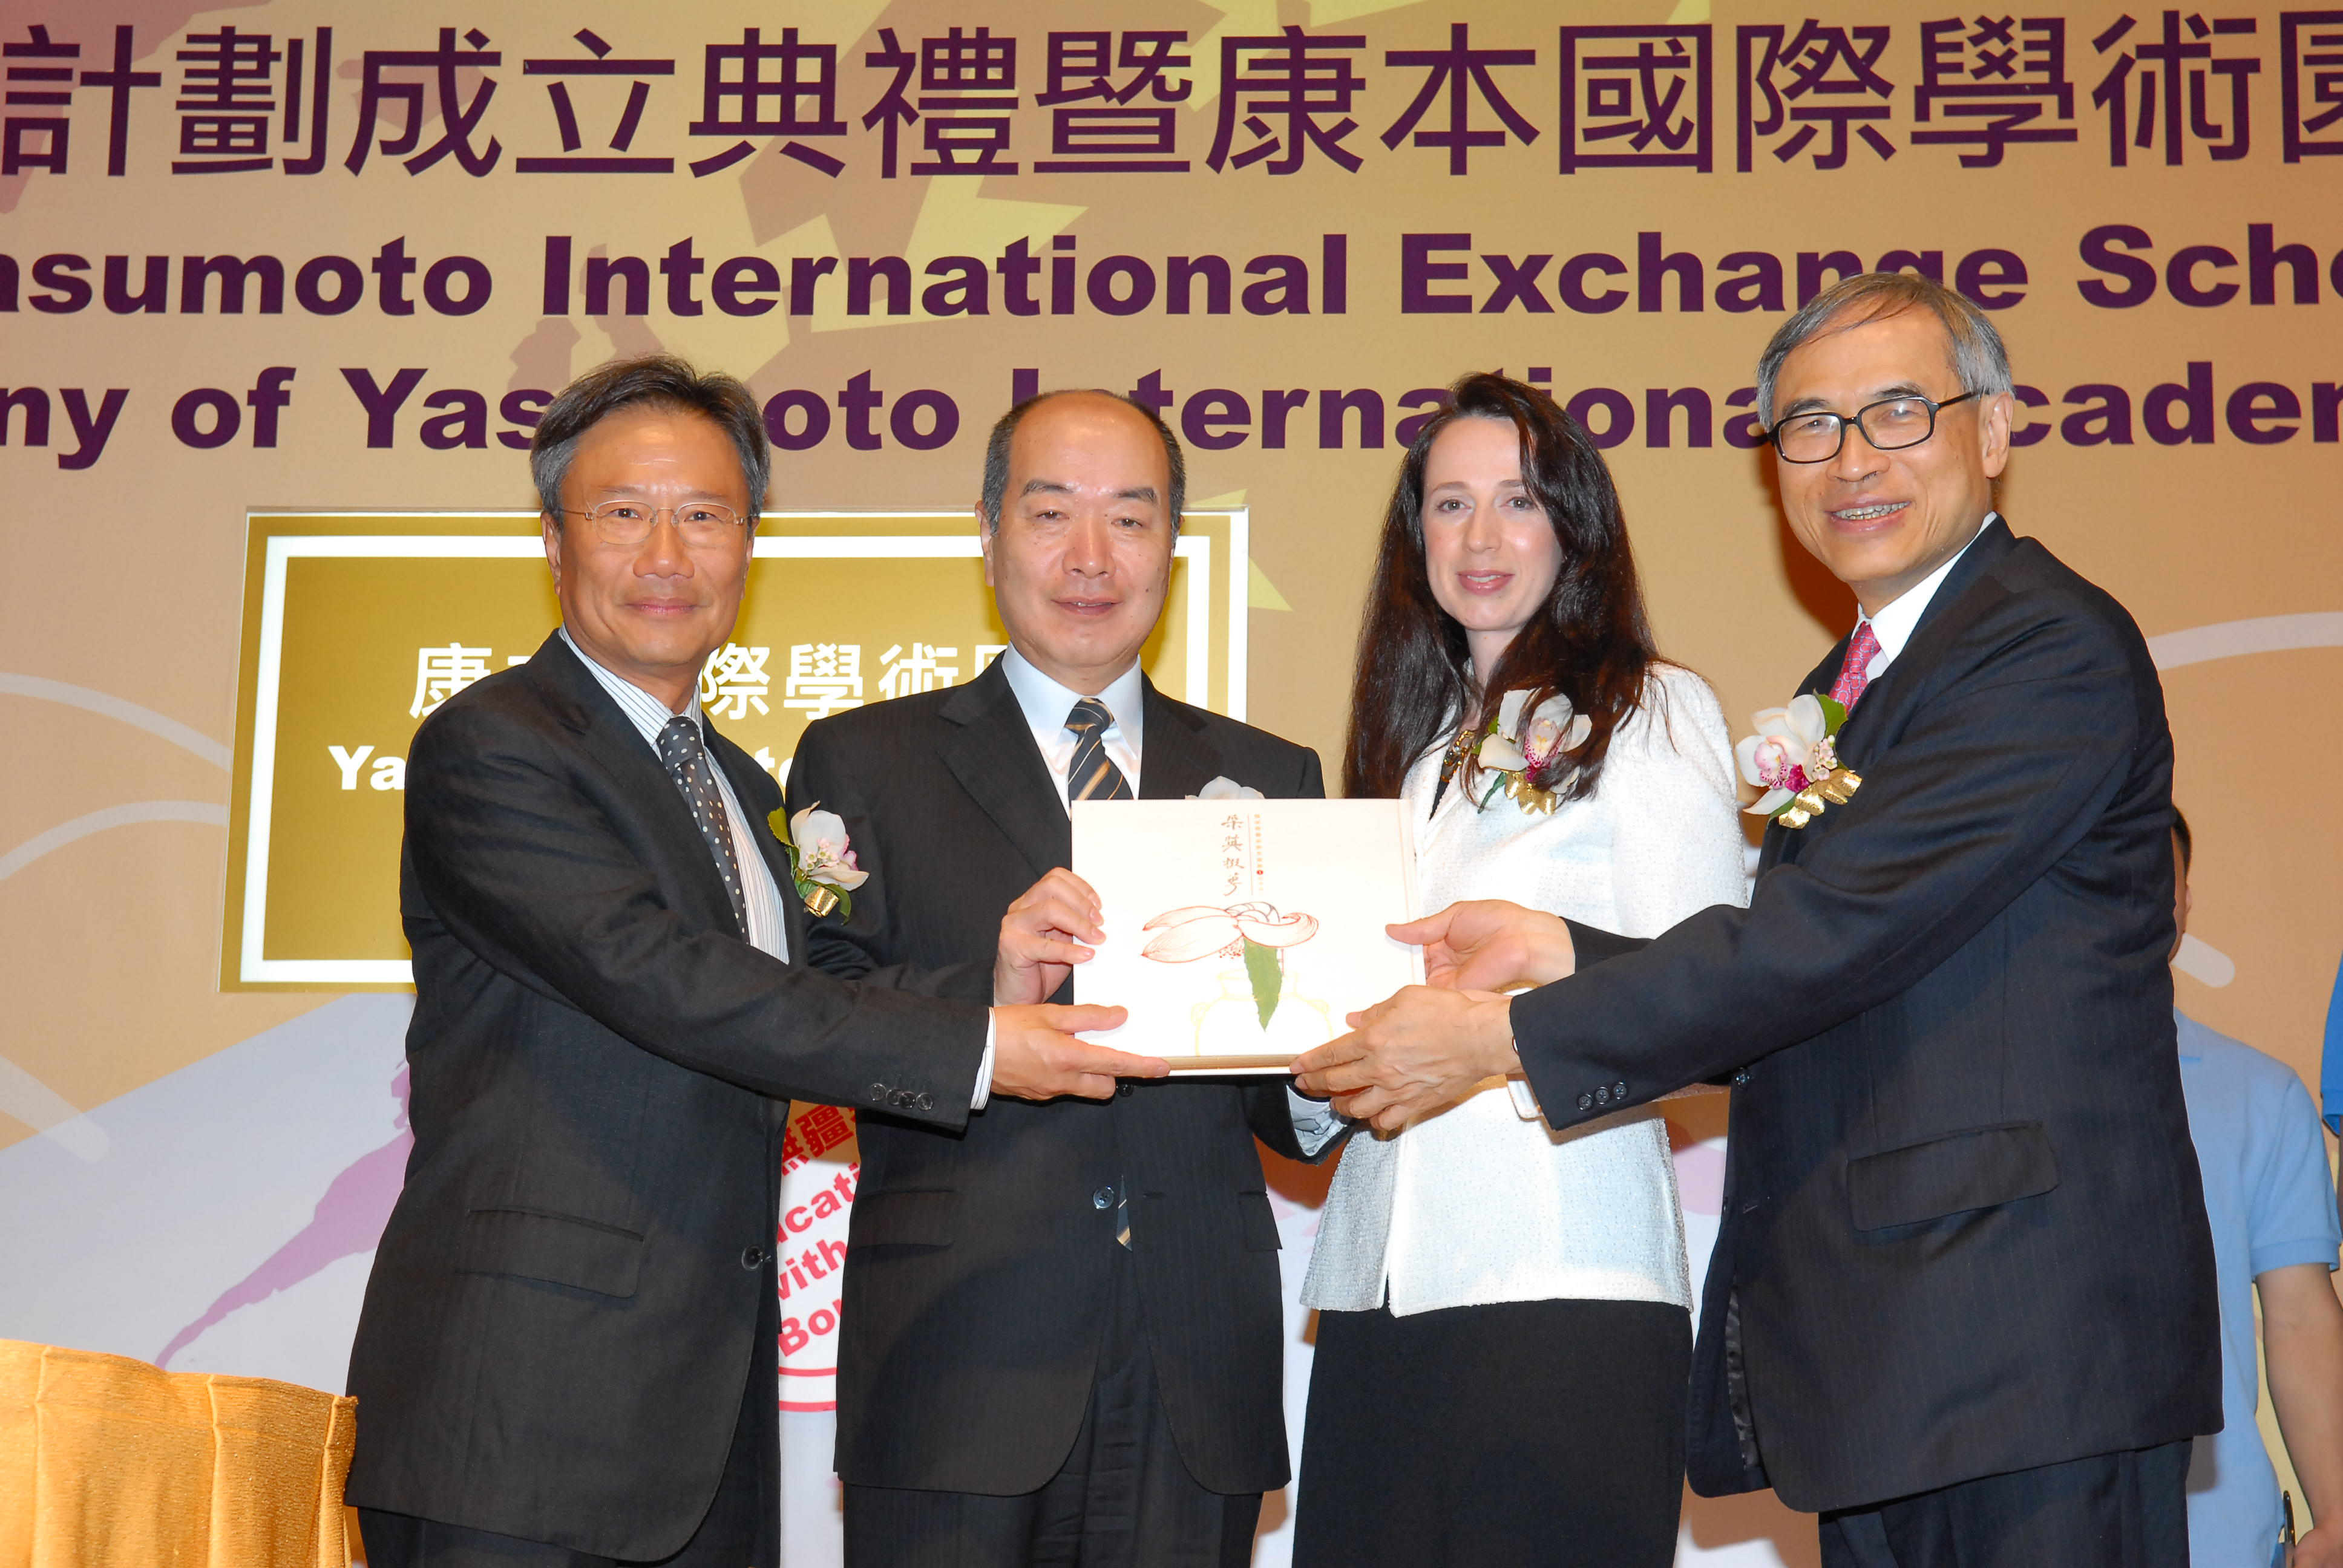 Dr. Edgar Cheng, Chairman of the Council, CUHK and Professor Lawrence J. Lau, Vice-Chancellor of CUHK presented a souvenir to Mr. and Mrs. Yasumoto.